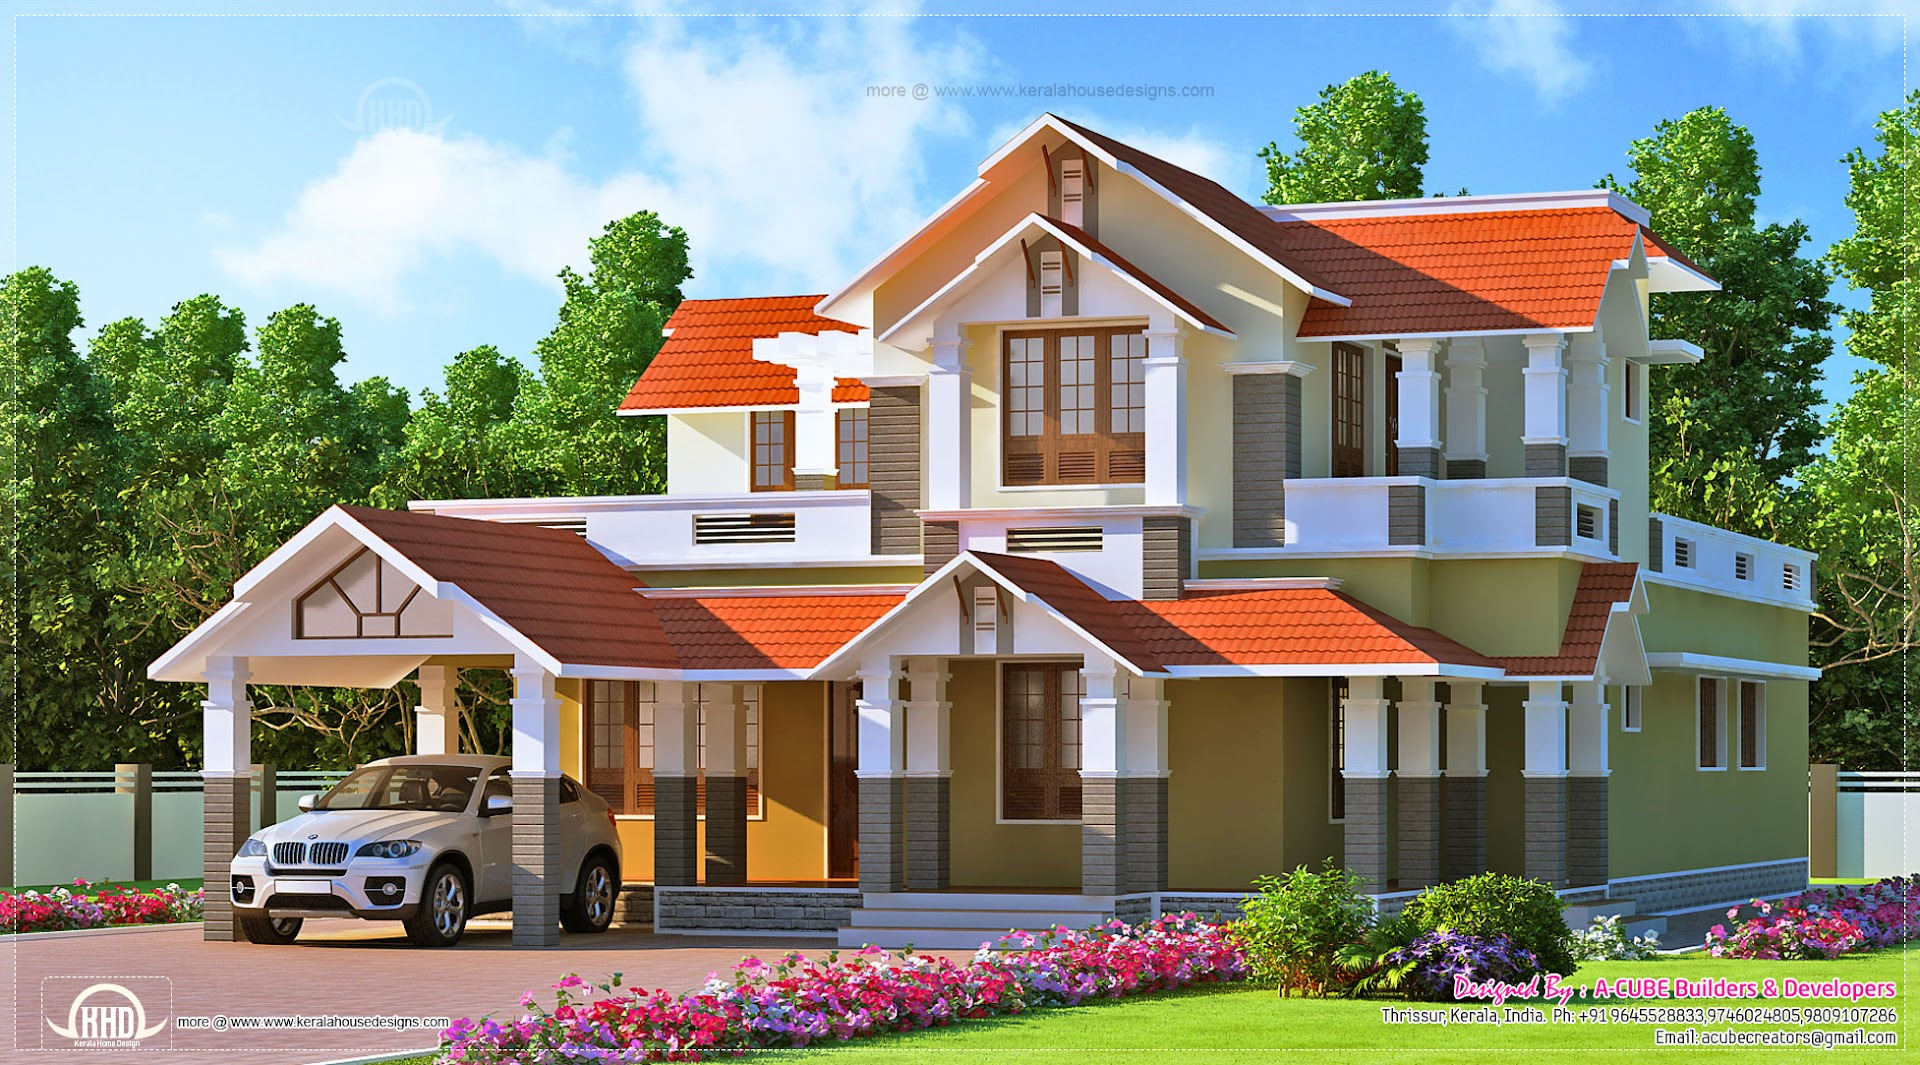 April 2013 Kerala Home Design And Floor Plans: how to make your dream house